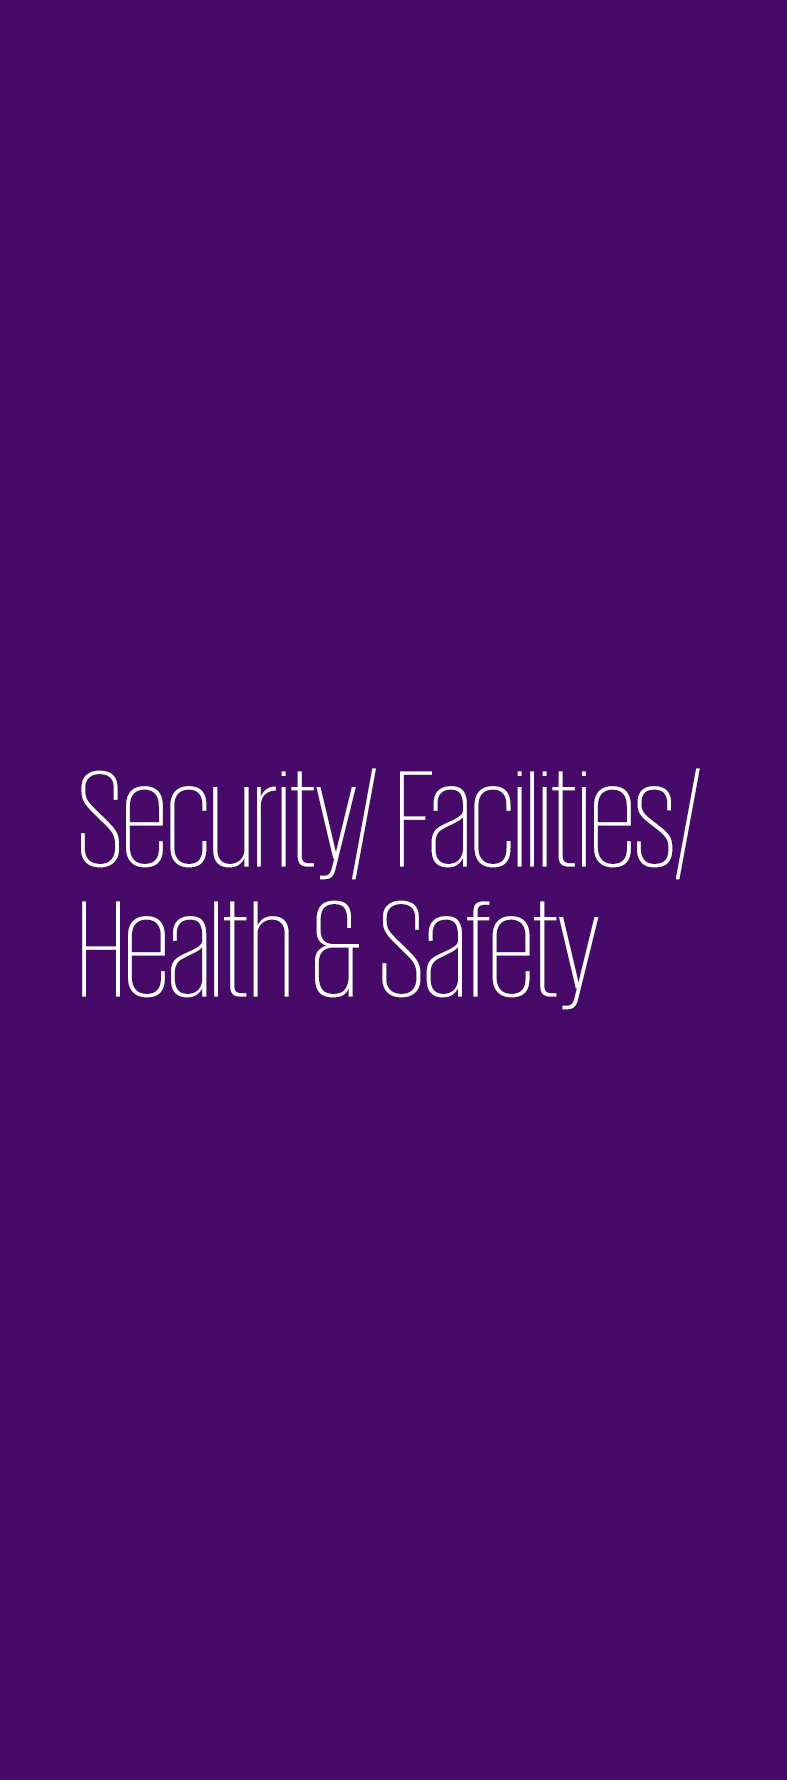 Security/ Facilities/ Health & Safety